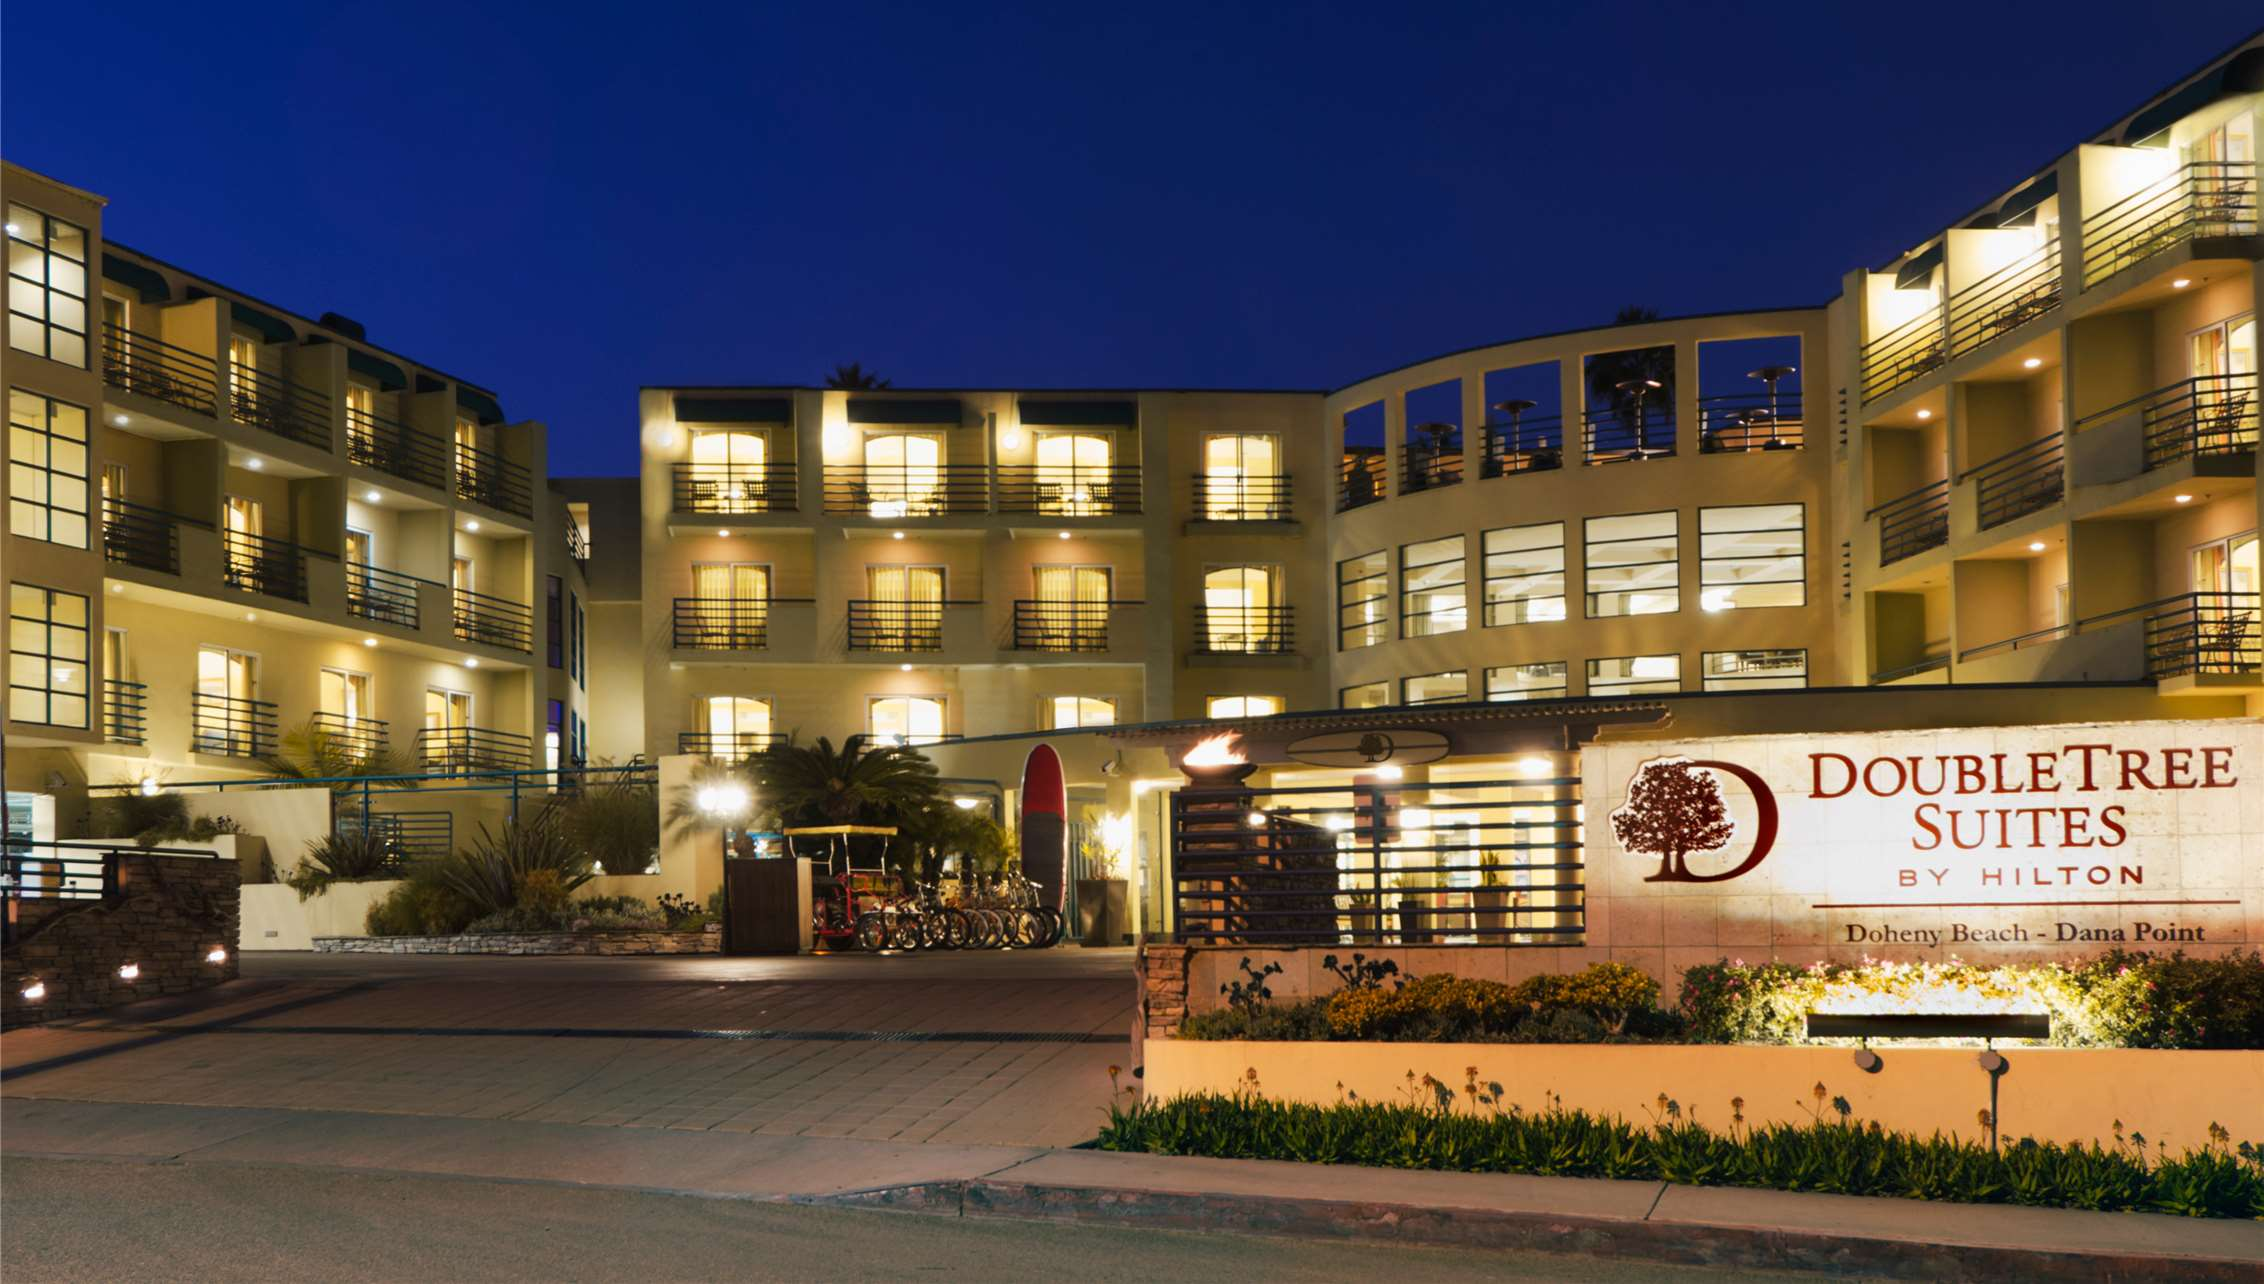 DoubleTree Suites by Hilton Hotel Doheny Beach - Dana Point image 2